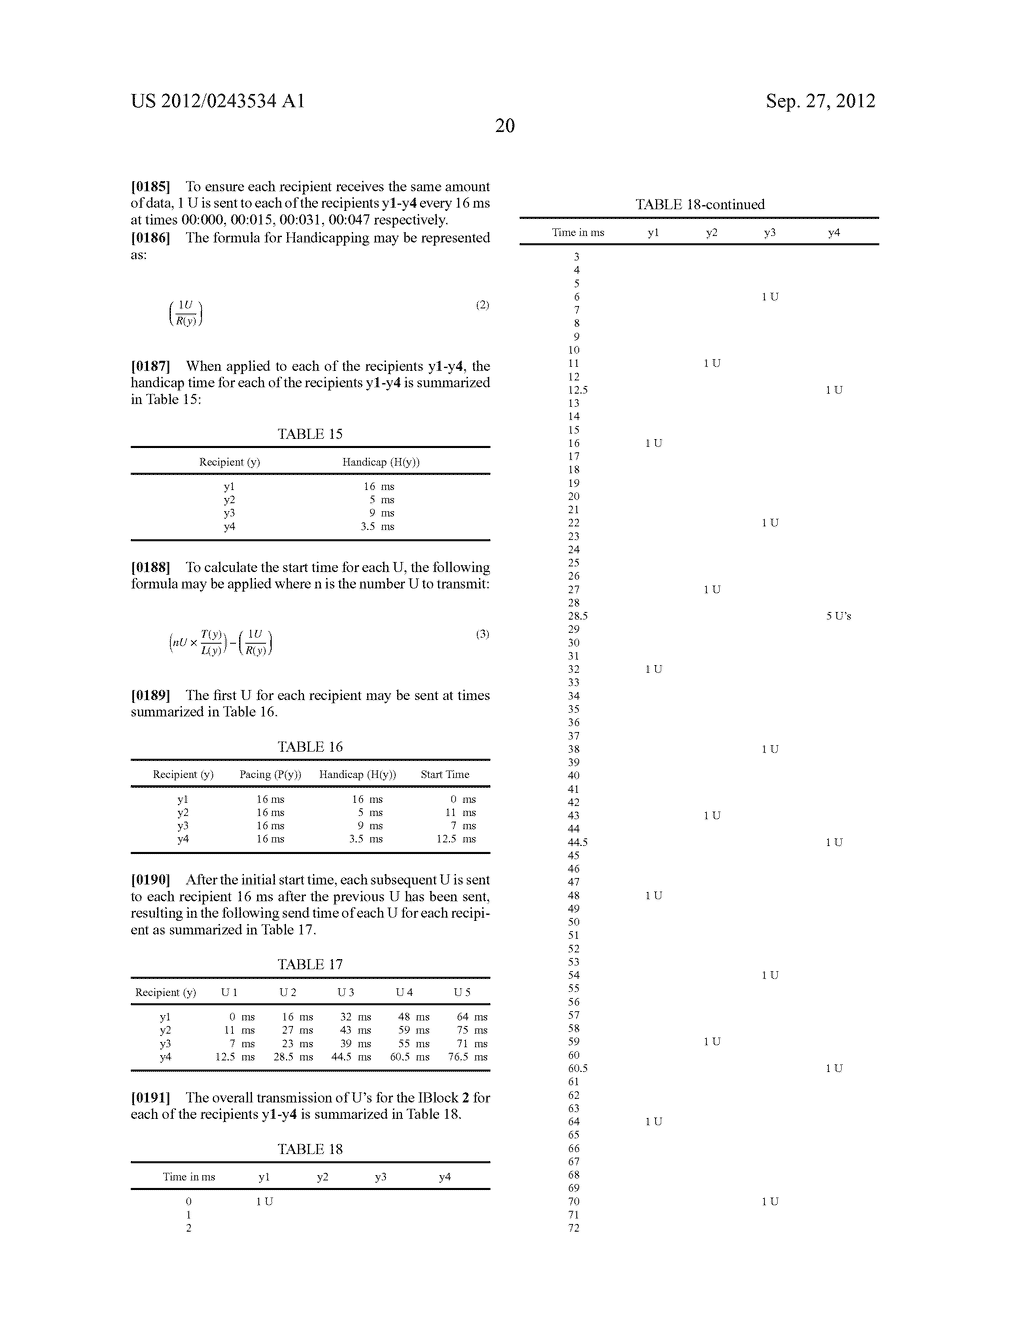 METHOD AND SYSTEM FOR PACING, ACKING, TIMING, AND HANDICAPPING (PATH) FOR     SIMULTANEOUS RECEIPT OF DOCUMENTS - diagram, schematic, and image 41